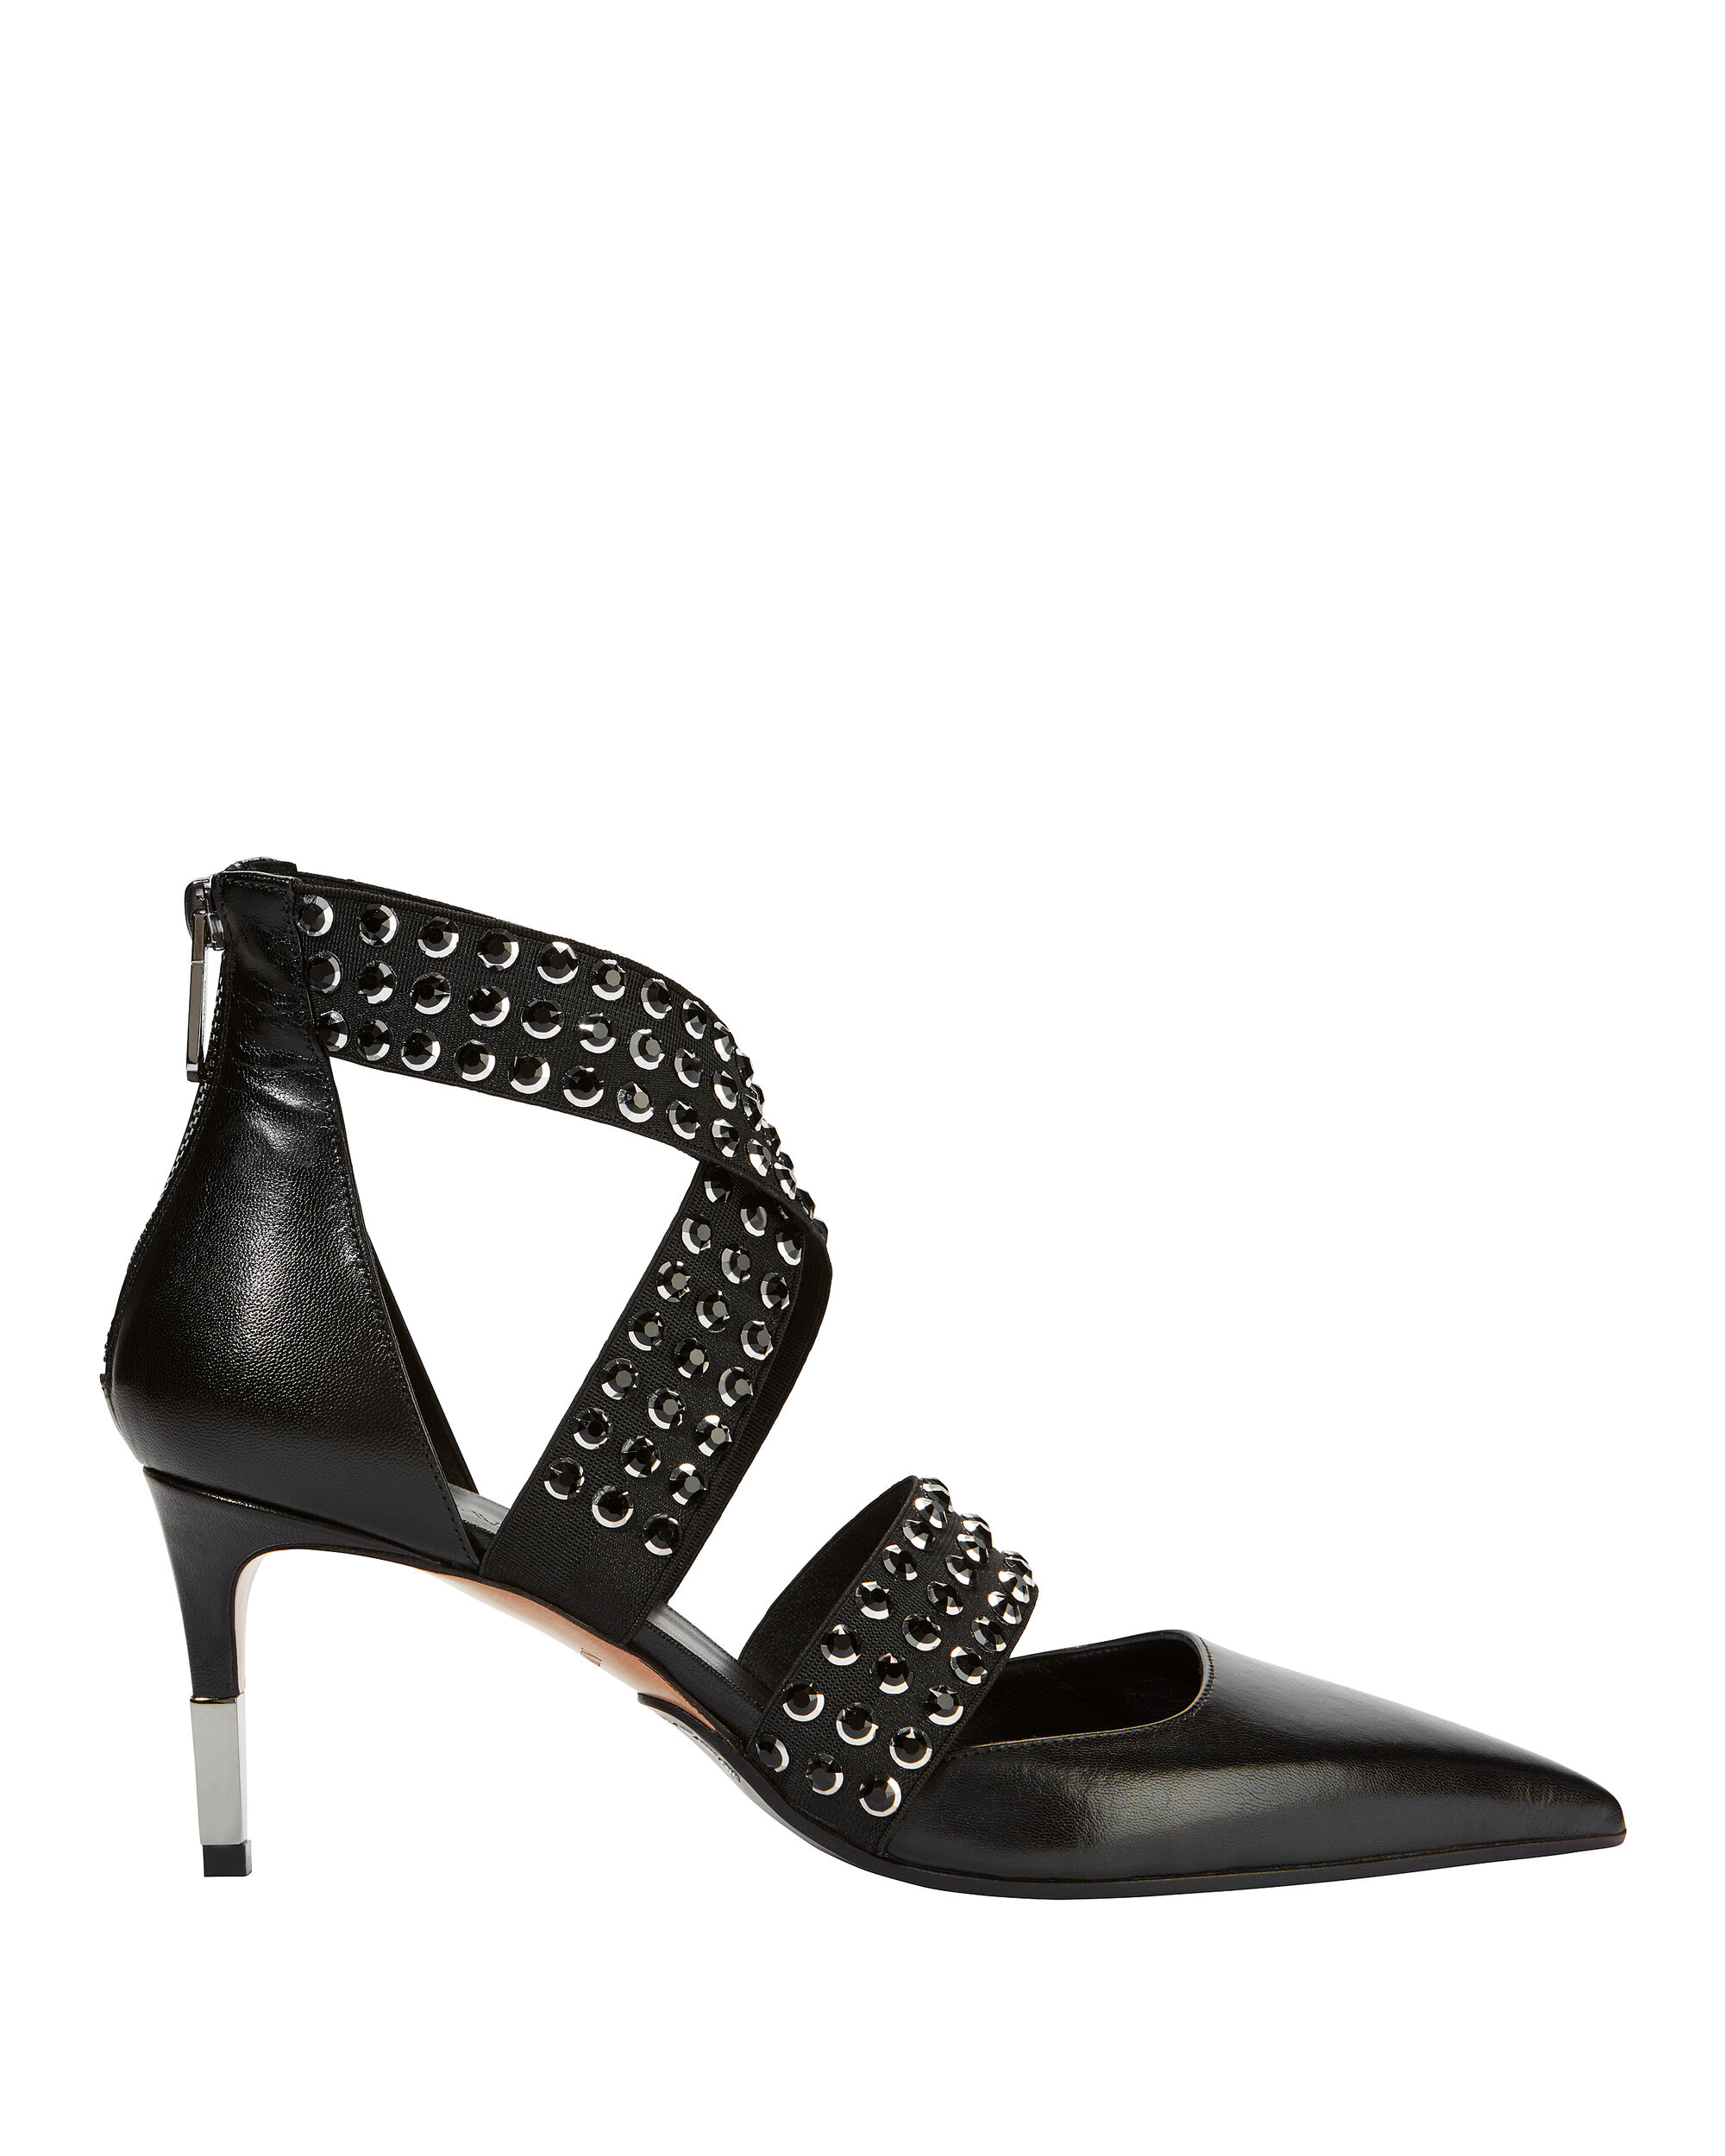 Delphine Studded Strap Pumps, BLACK, hi-res